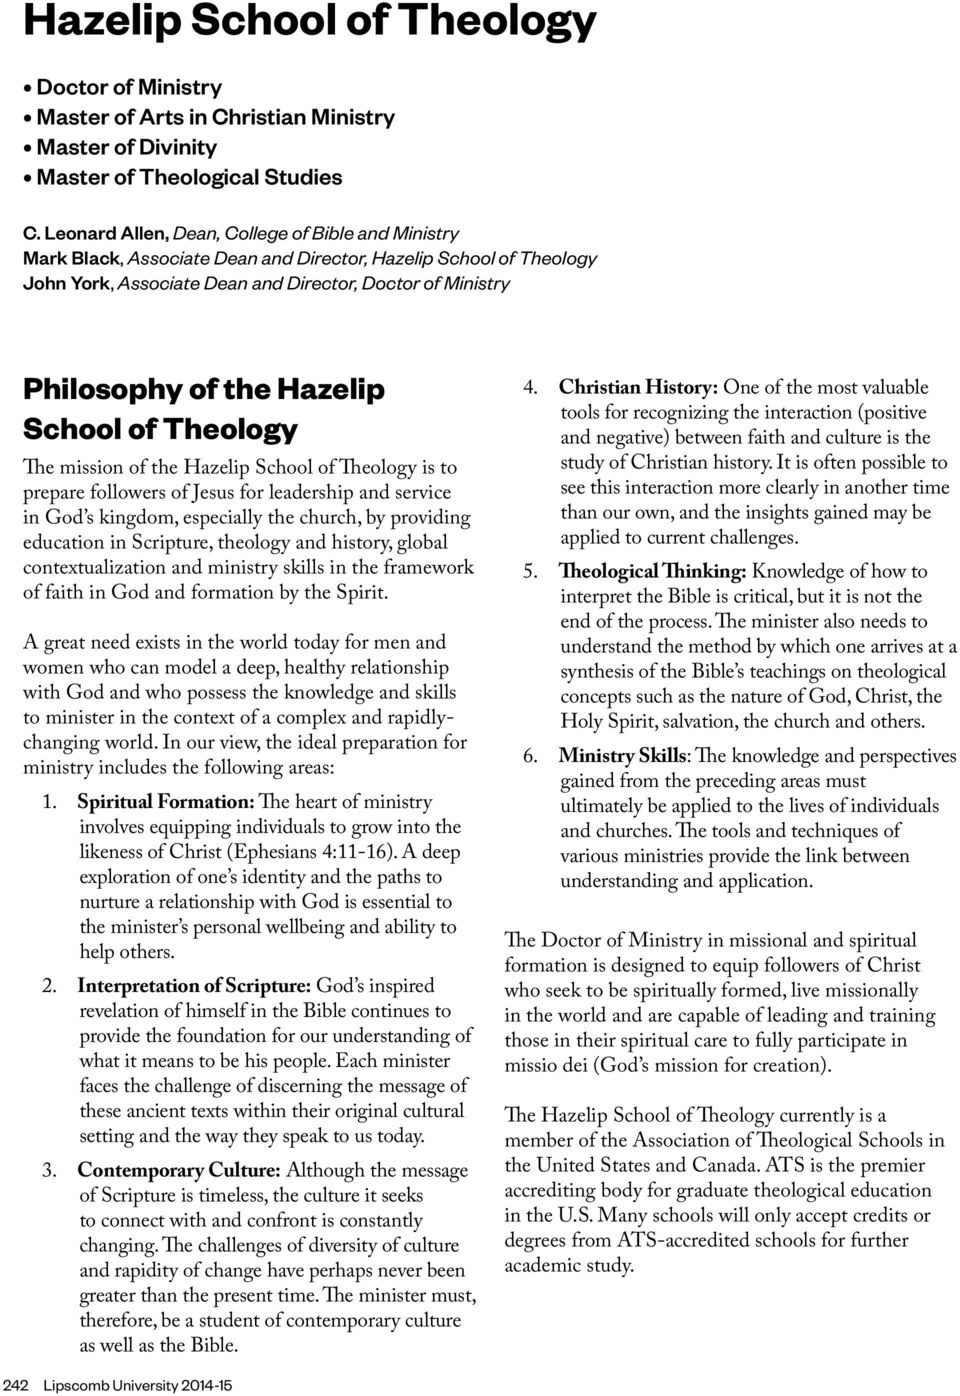 Hazelip School of Theology The mission of the Hazelip School of Theology is to prepare followers of Jesus for leadership and service in God s kingdom, especially the church, by providing education in